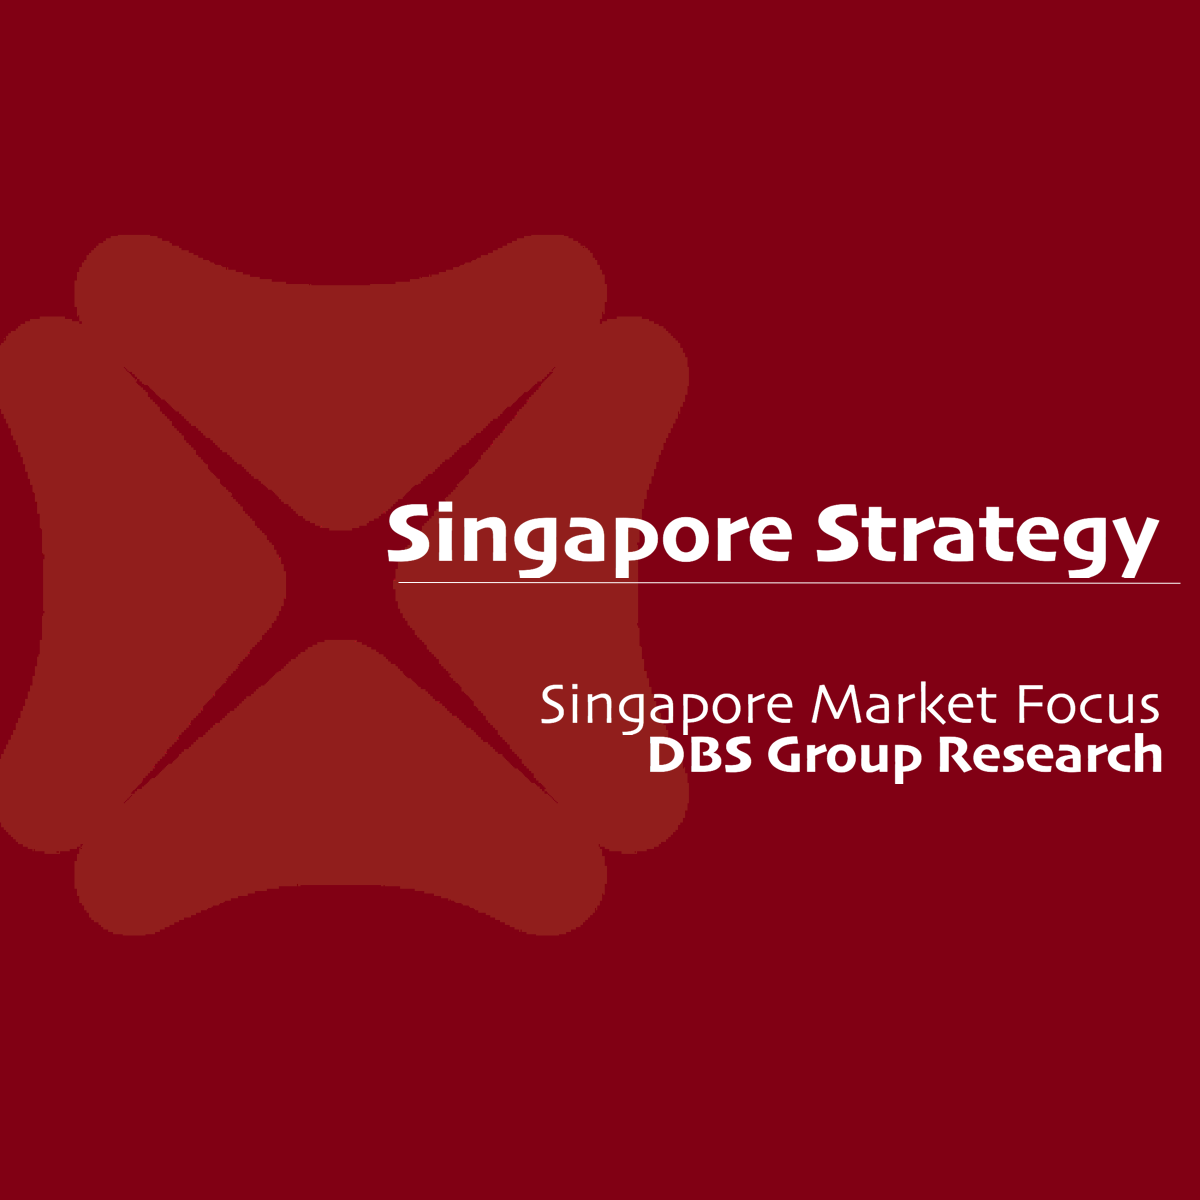 Singapore Strategy - DBS Vickers 2016-12-14: Back on growth track